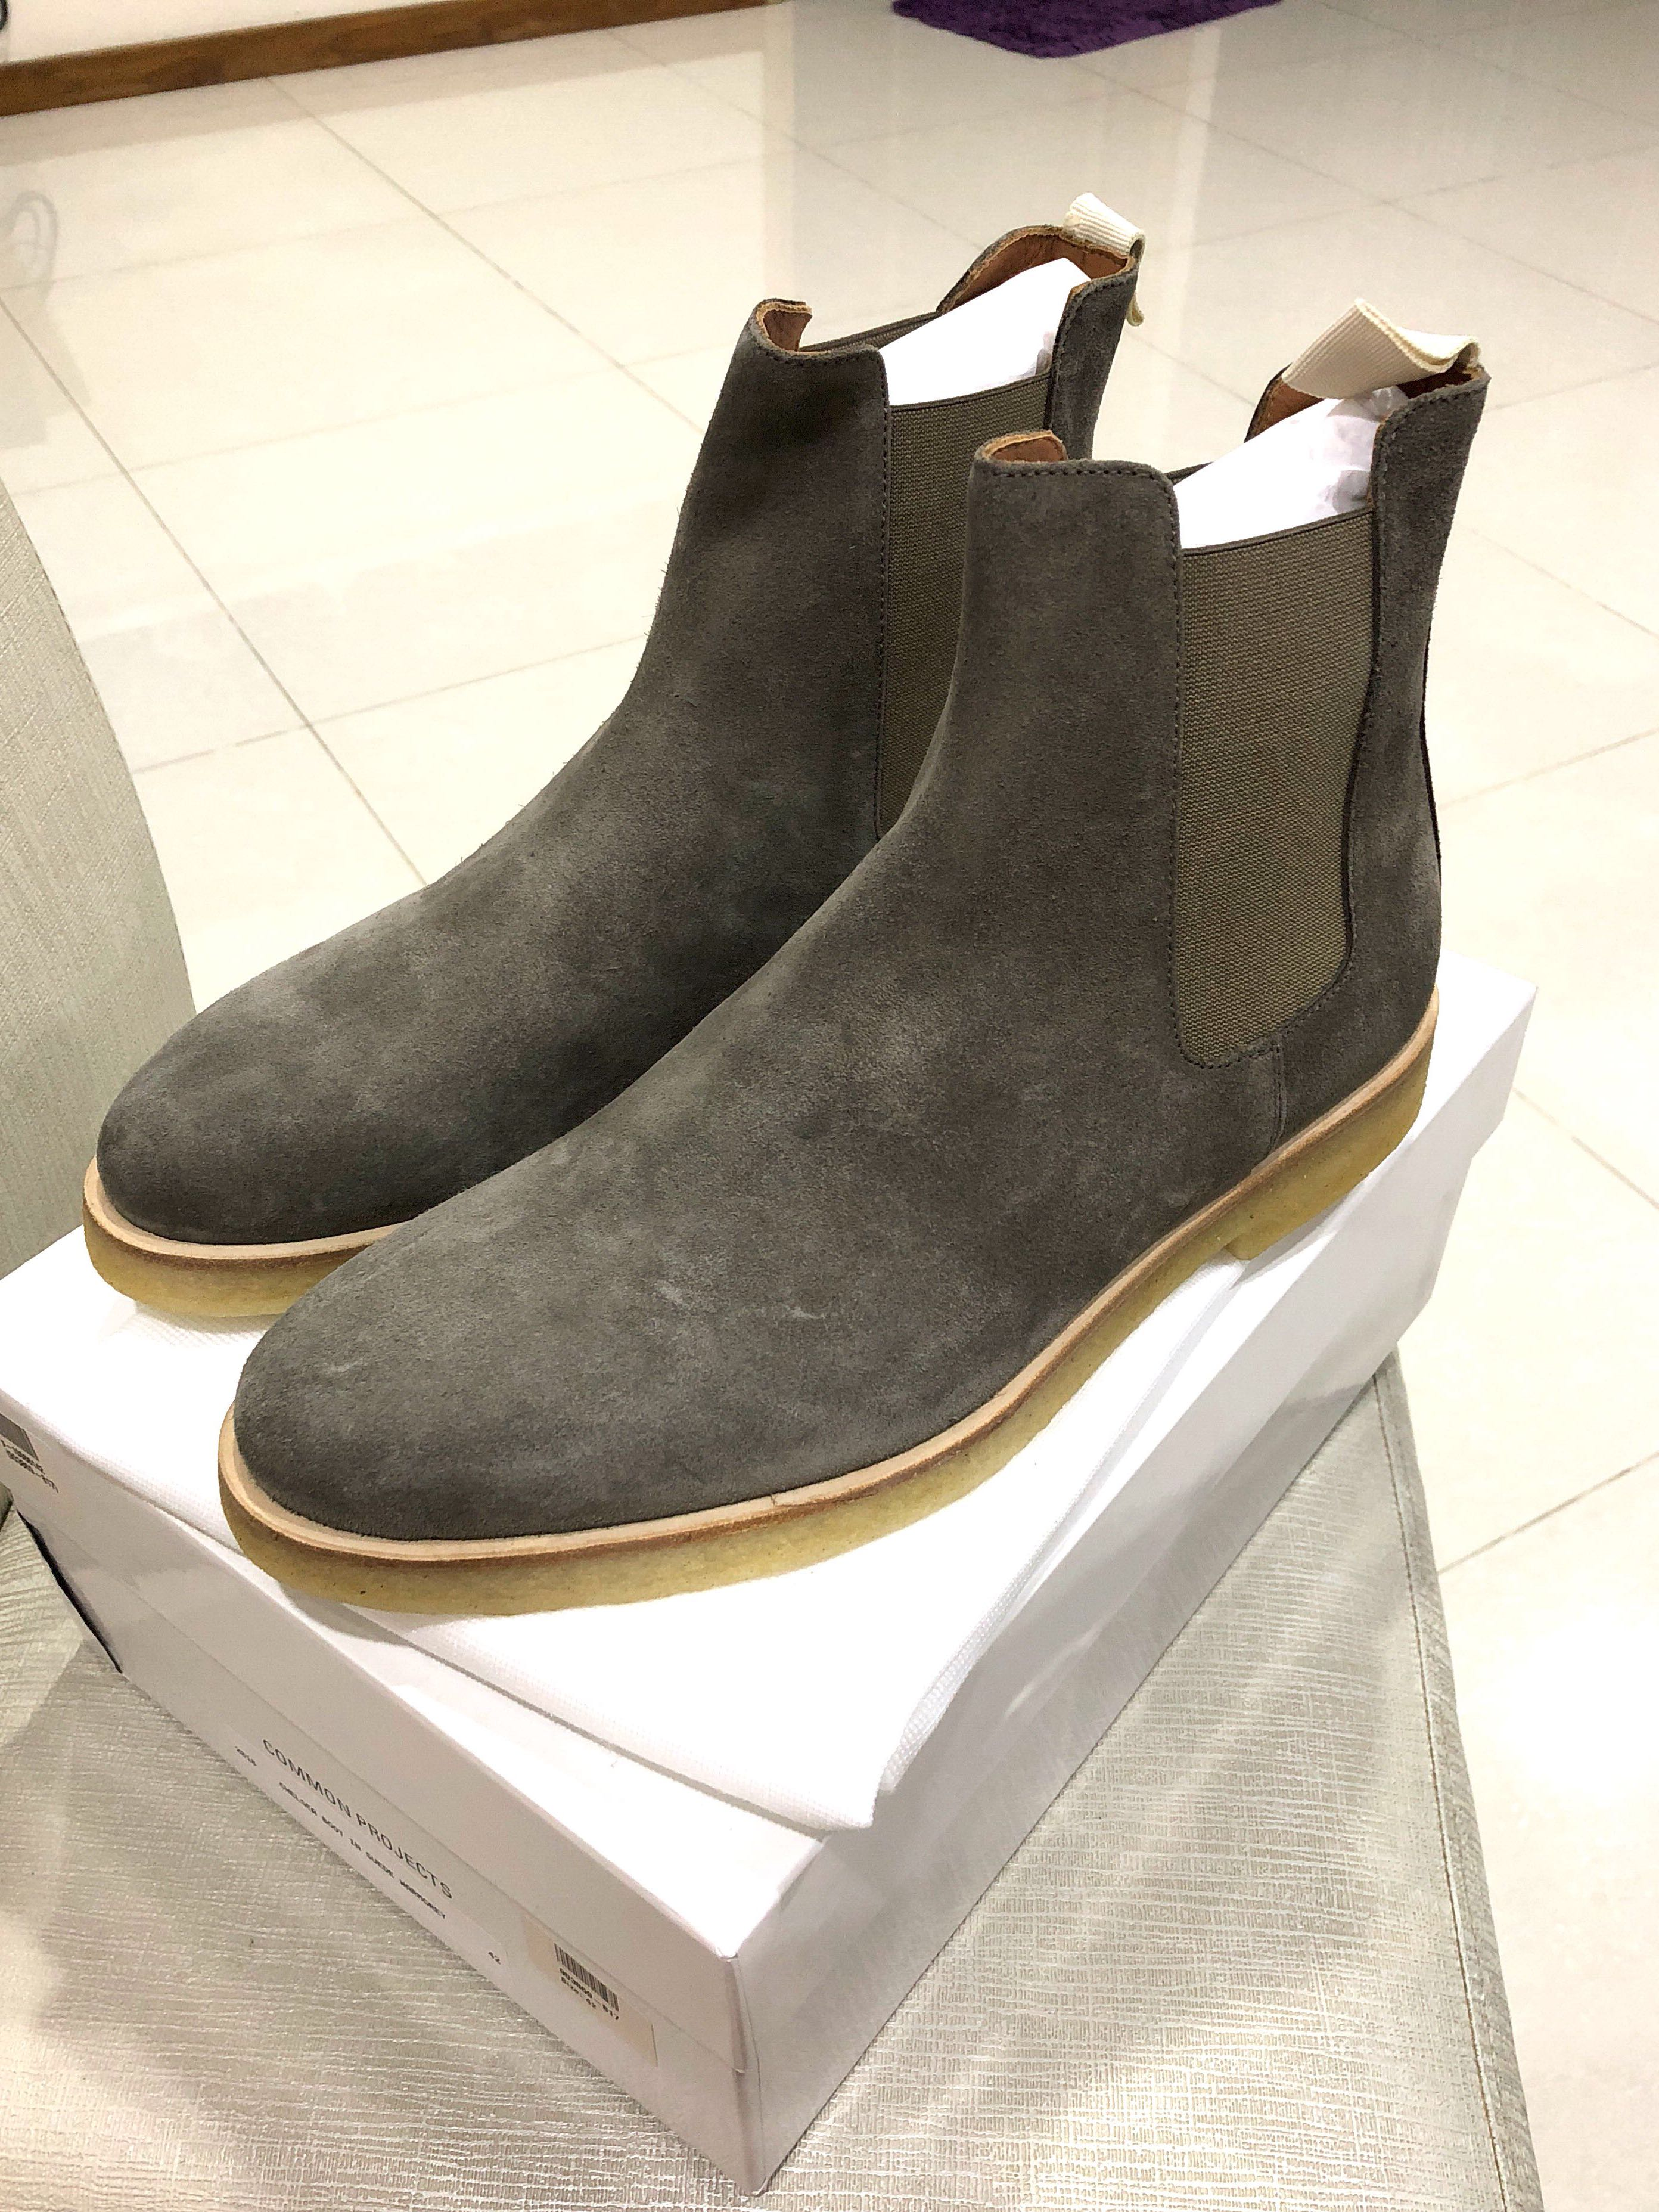 Authentic Common Projects Chelsea Boots